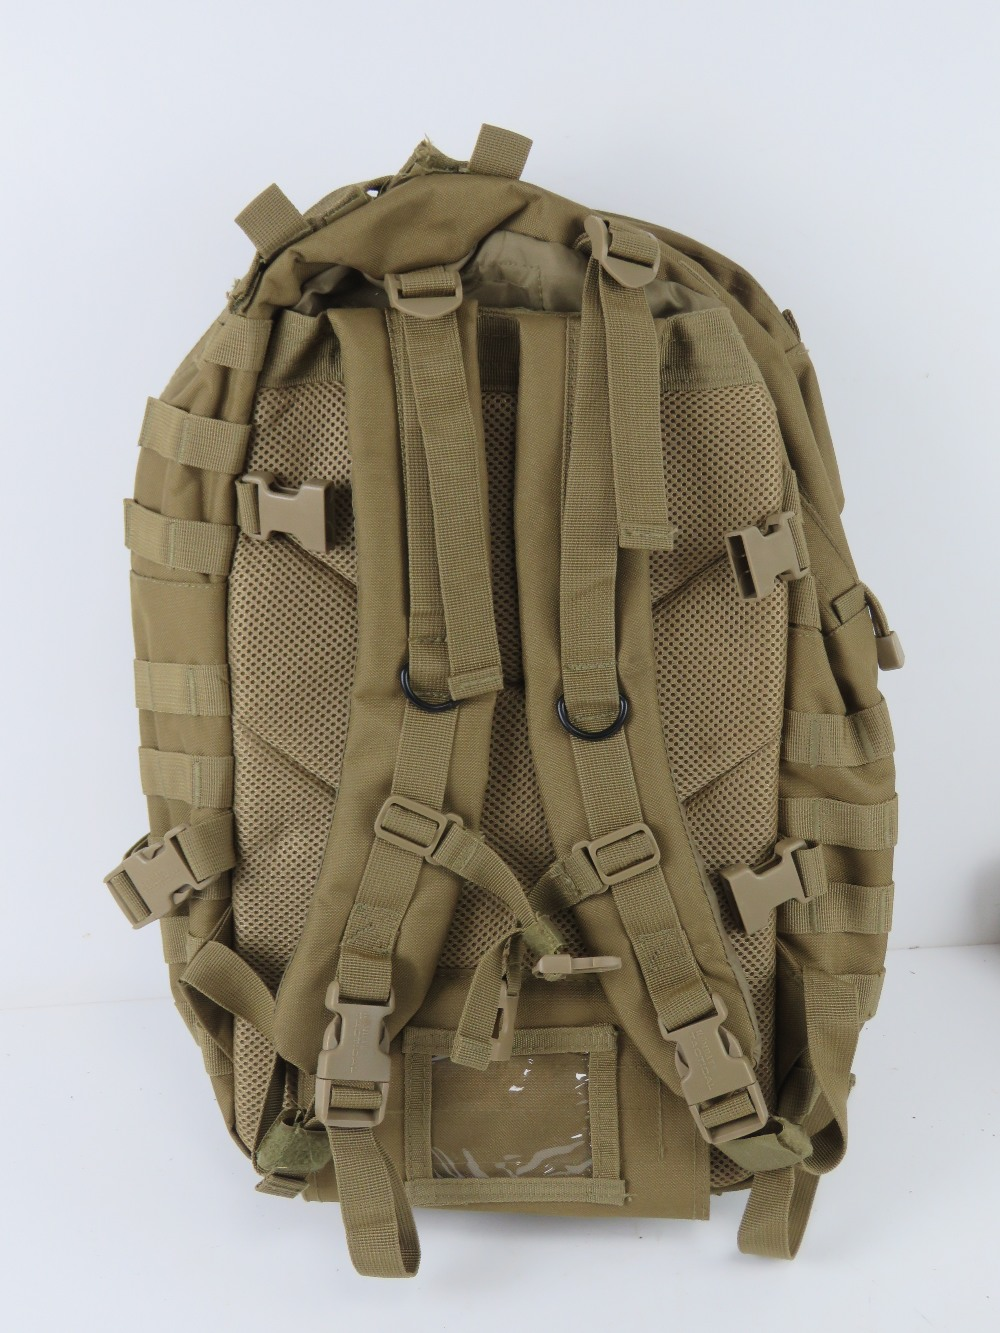 A British Military desert webbing belt with three pouches and water bottle, - Image 4 of 4